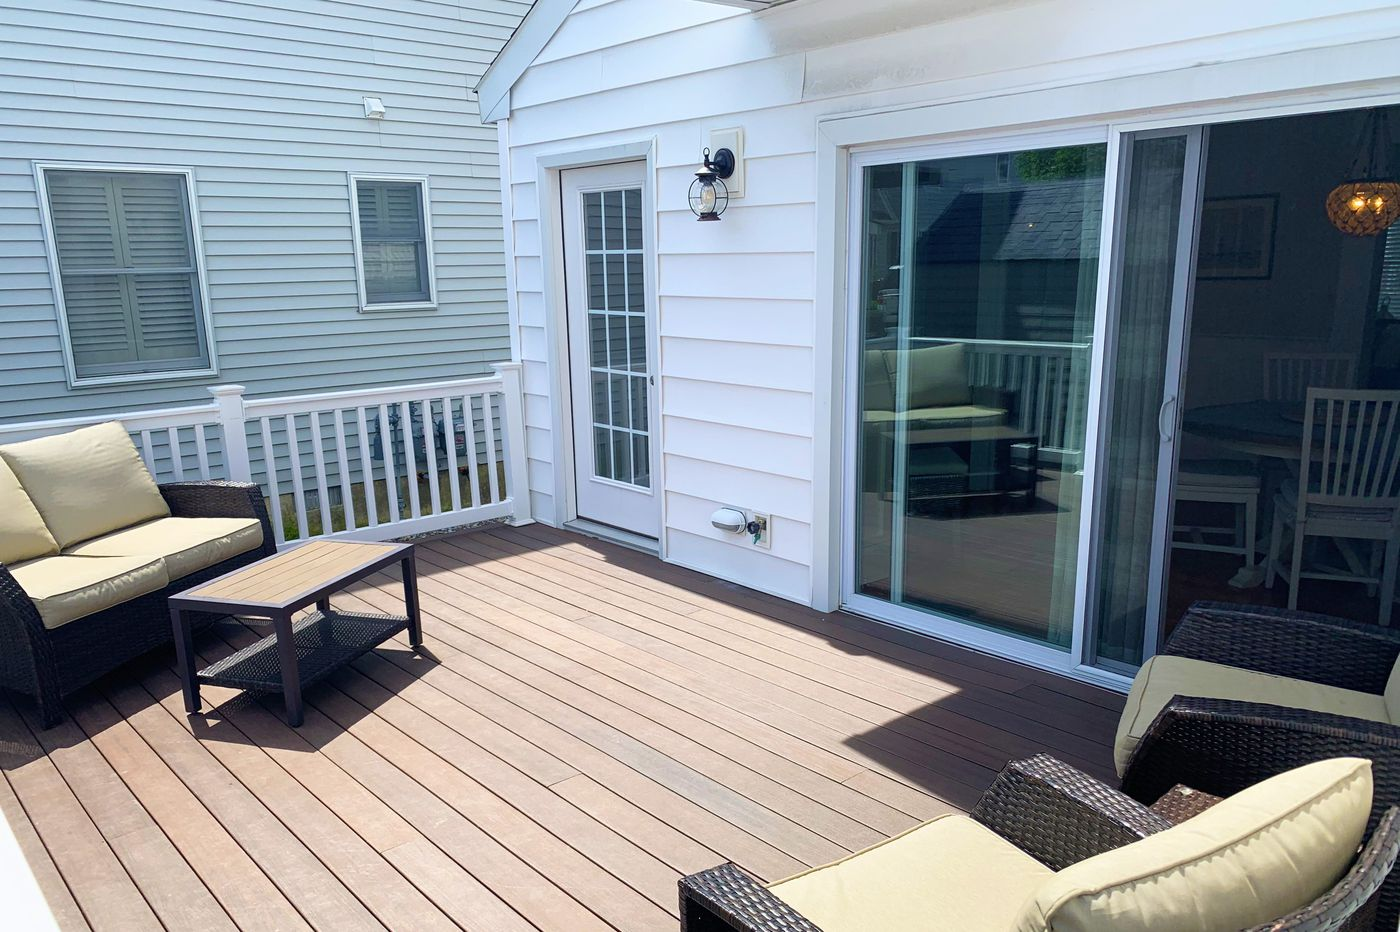 On the market: A detached condo in Ocean City for $699,900